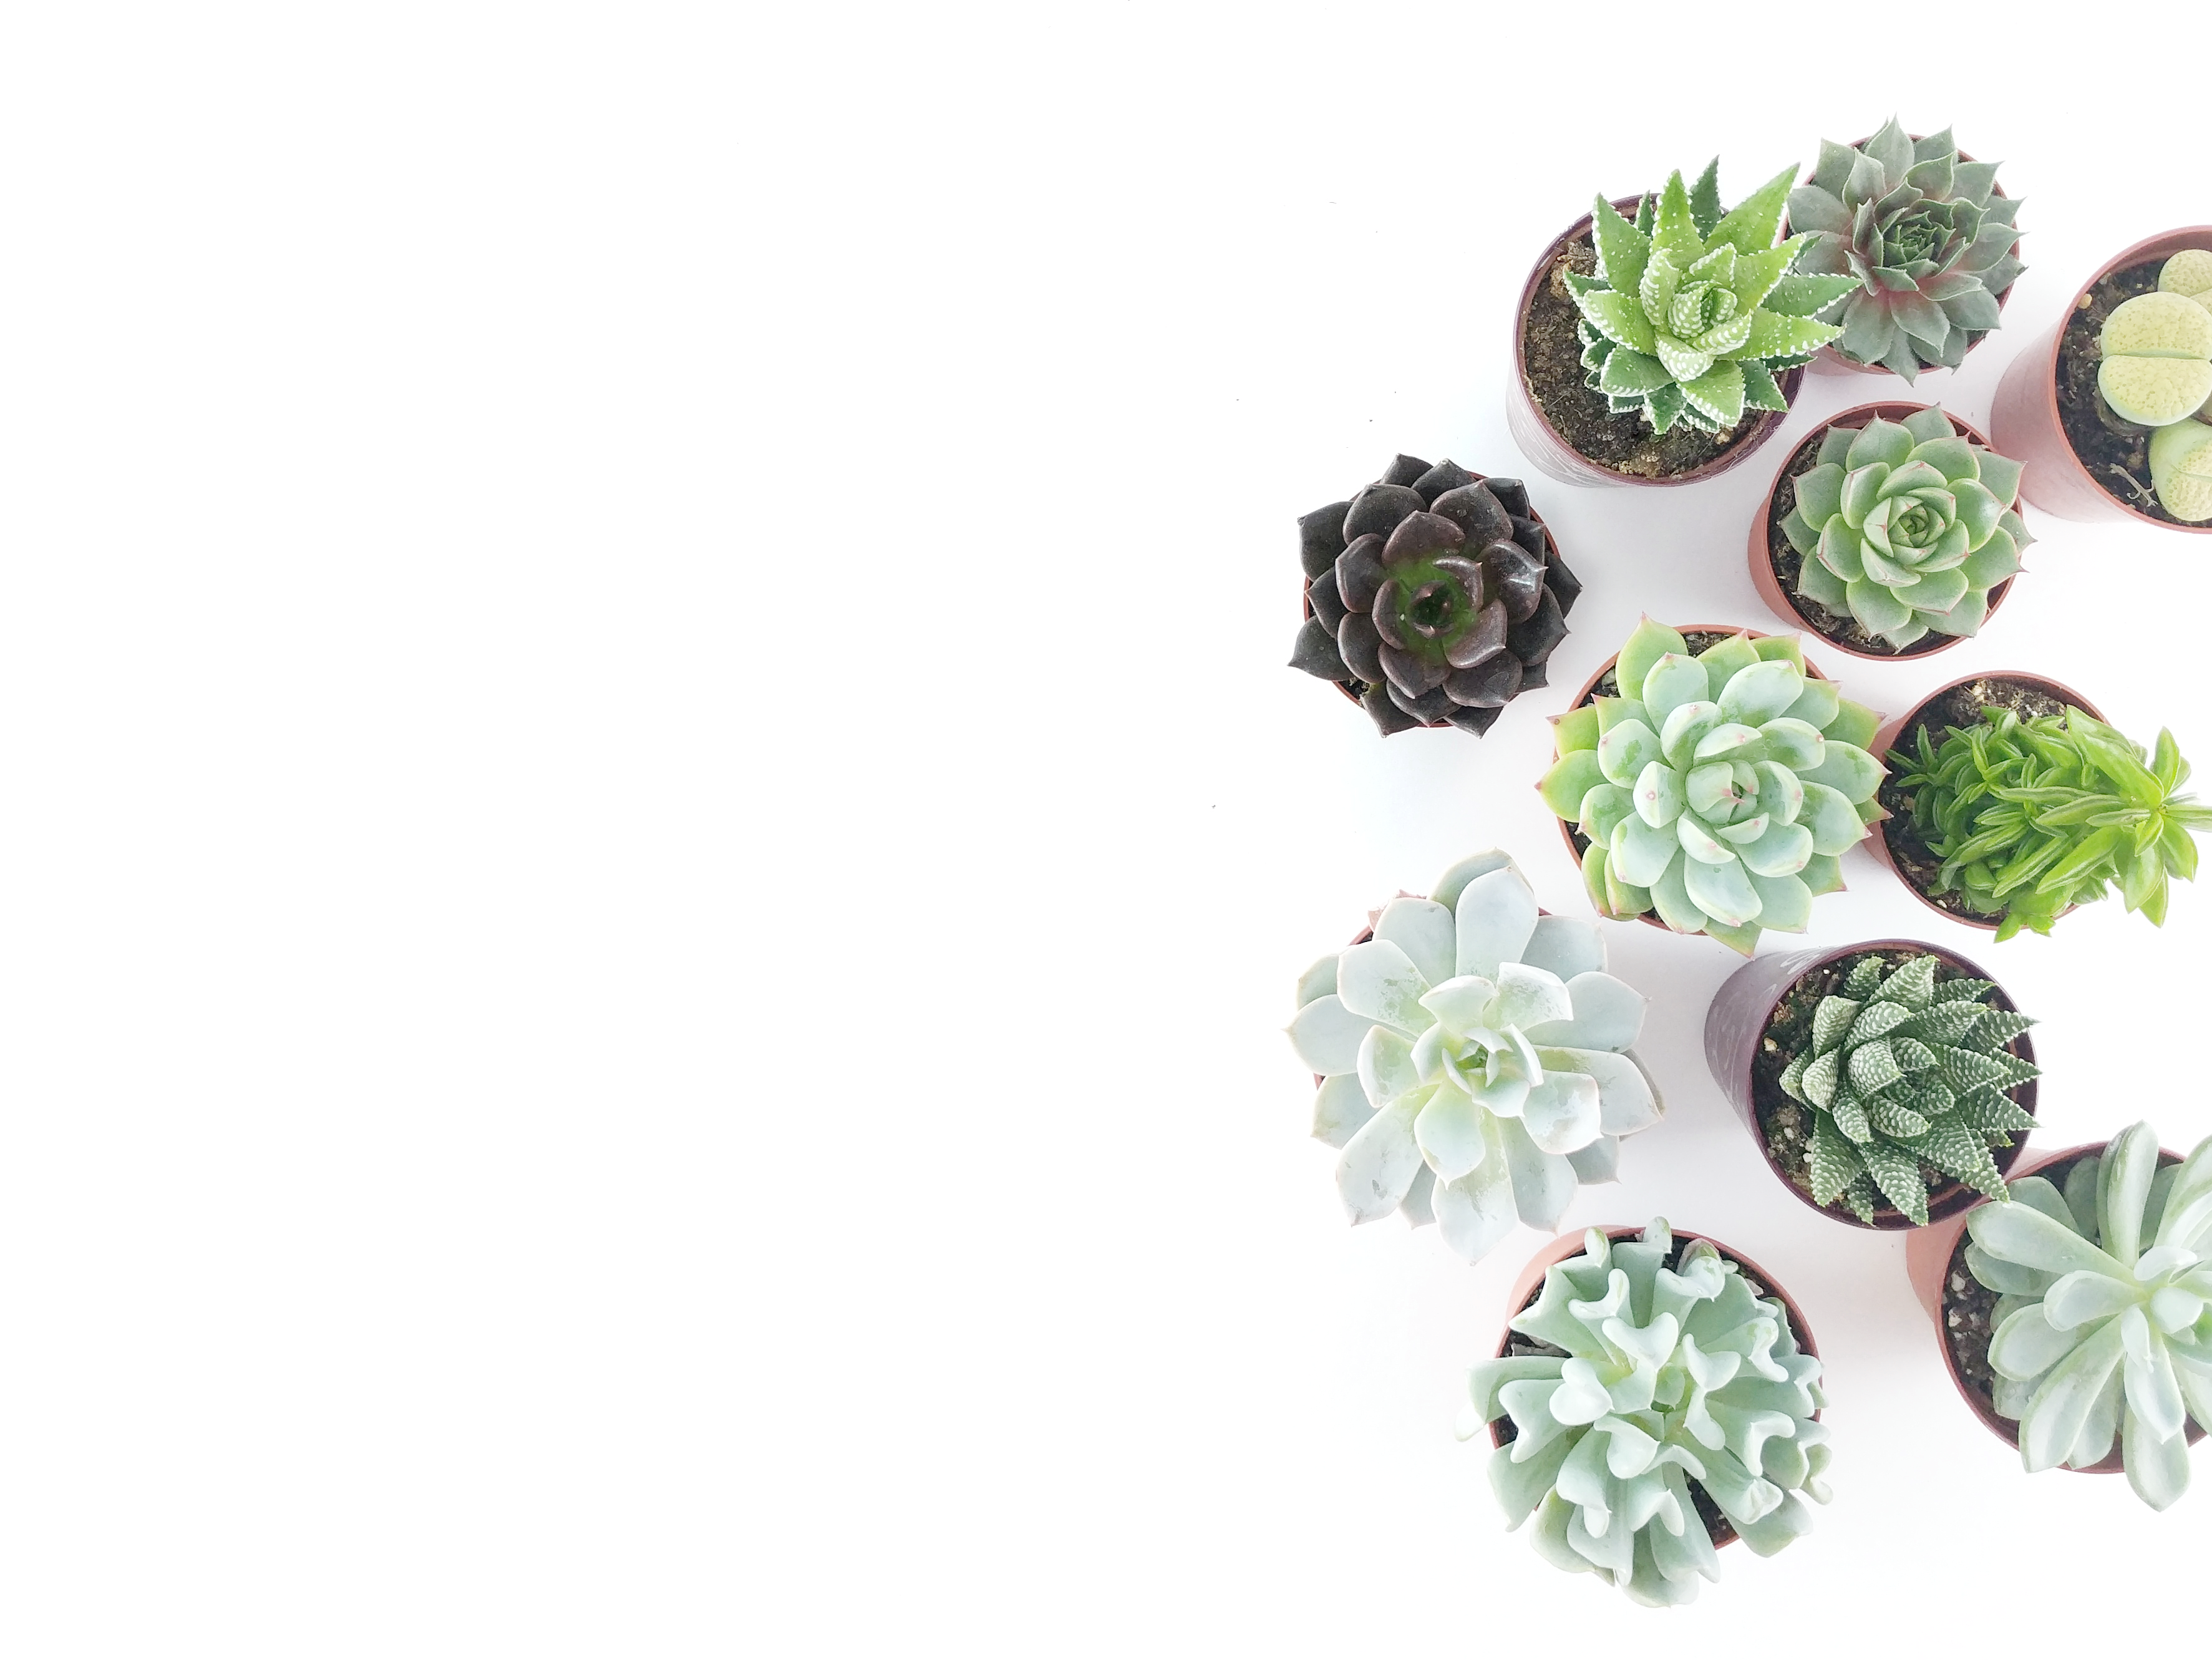 What Are Succulents?